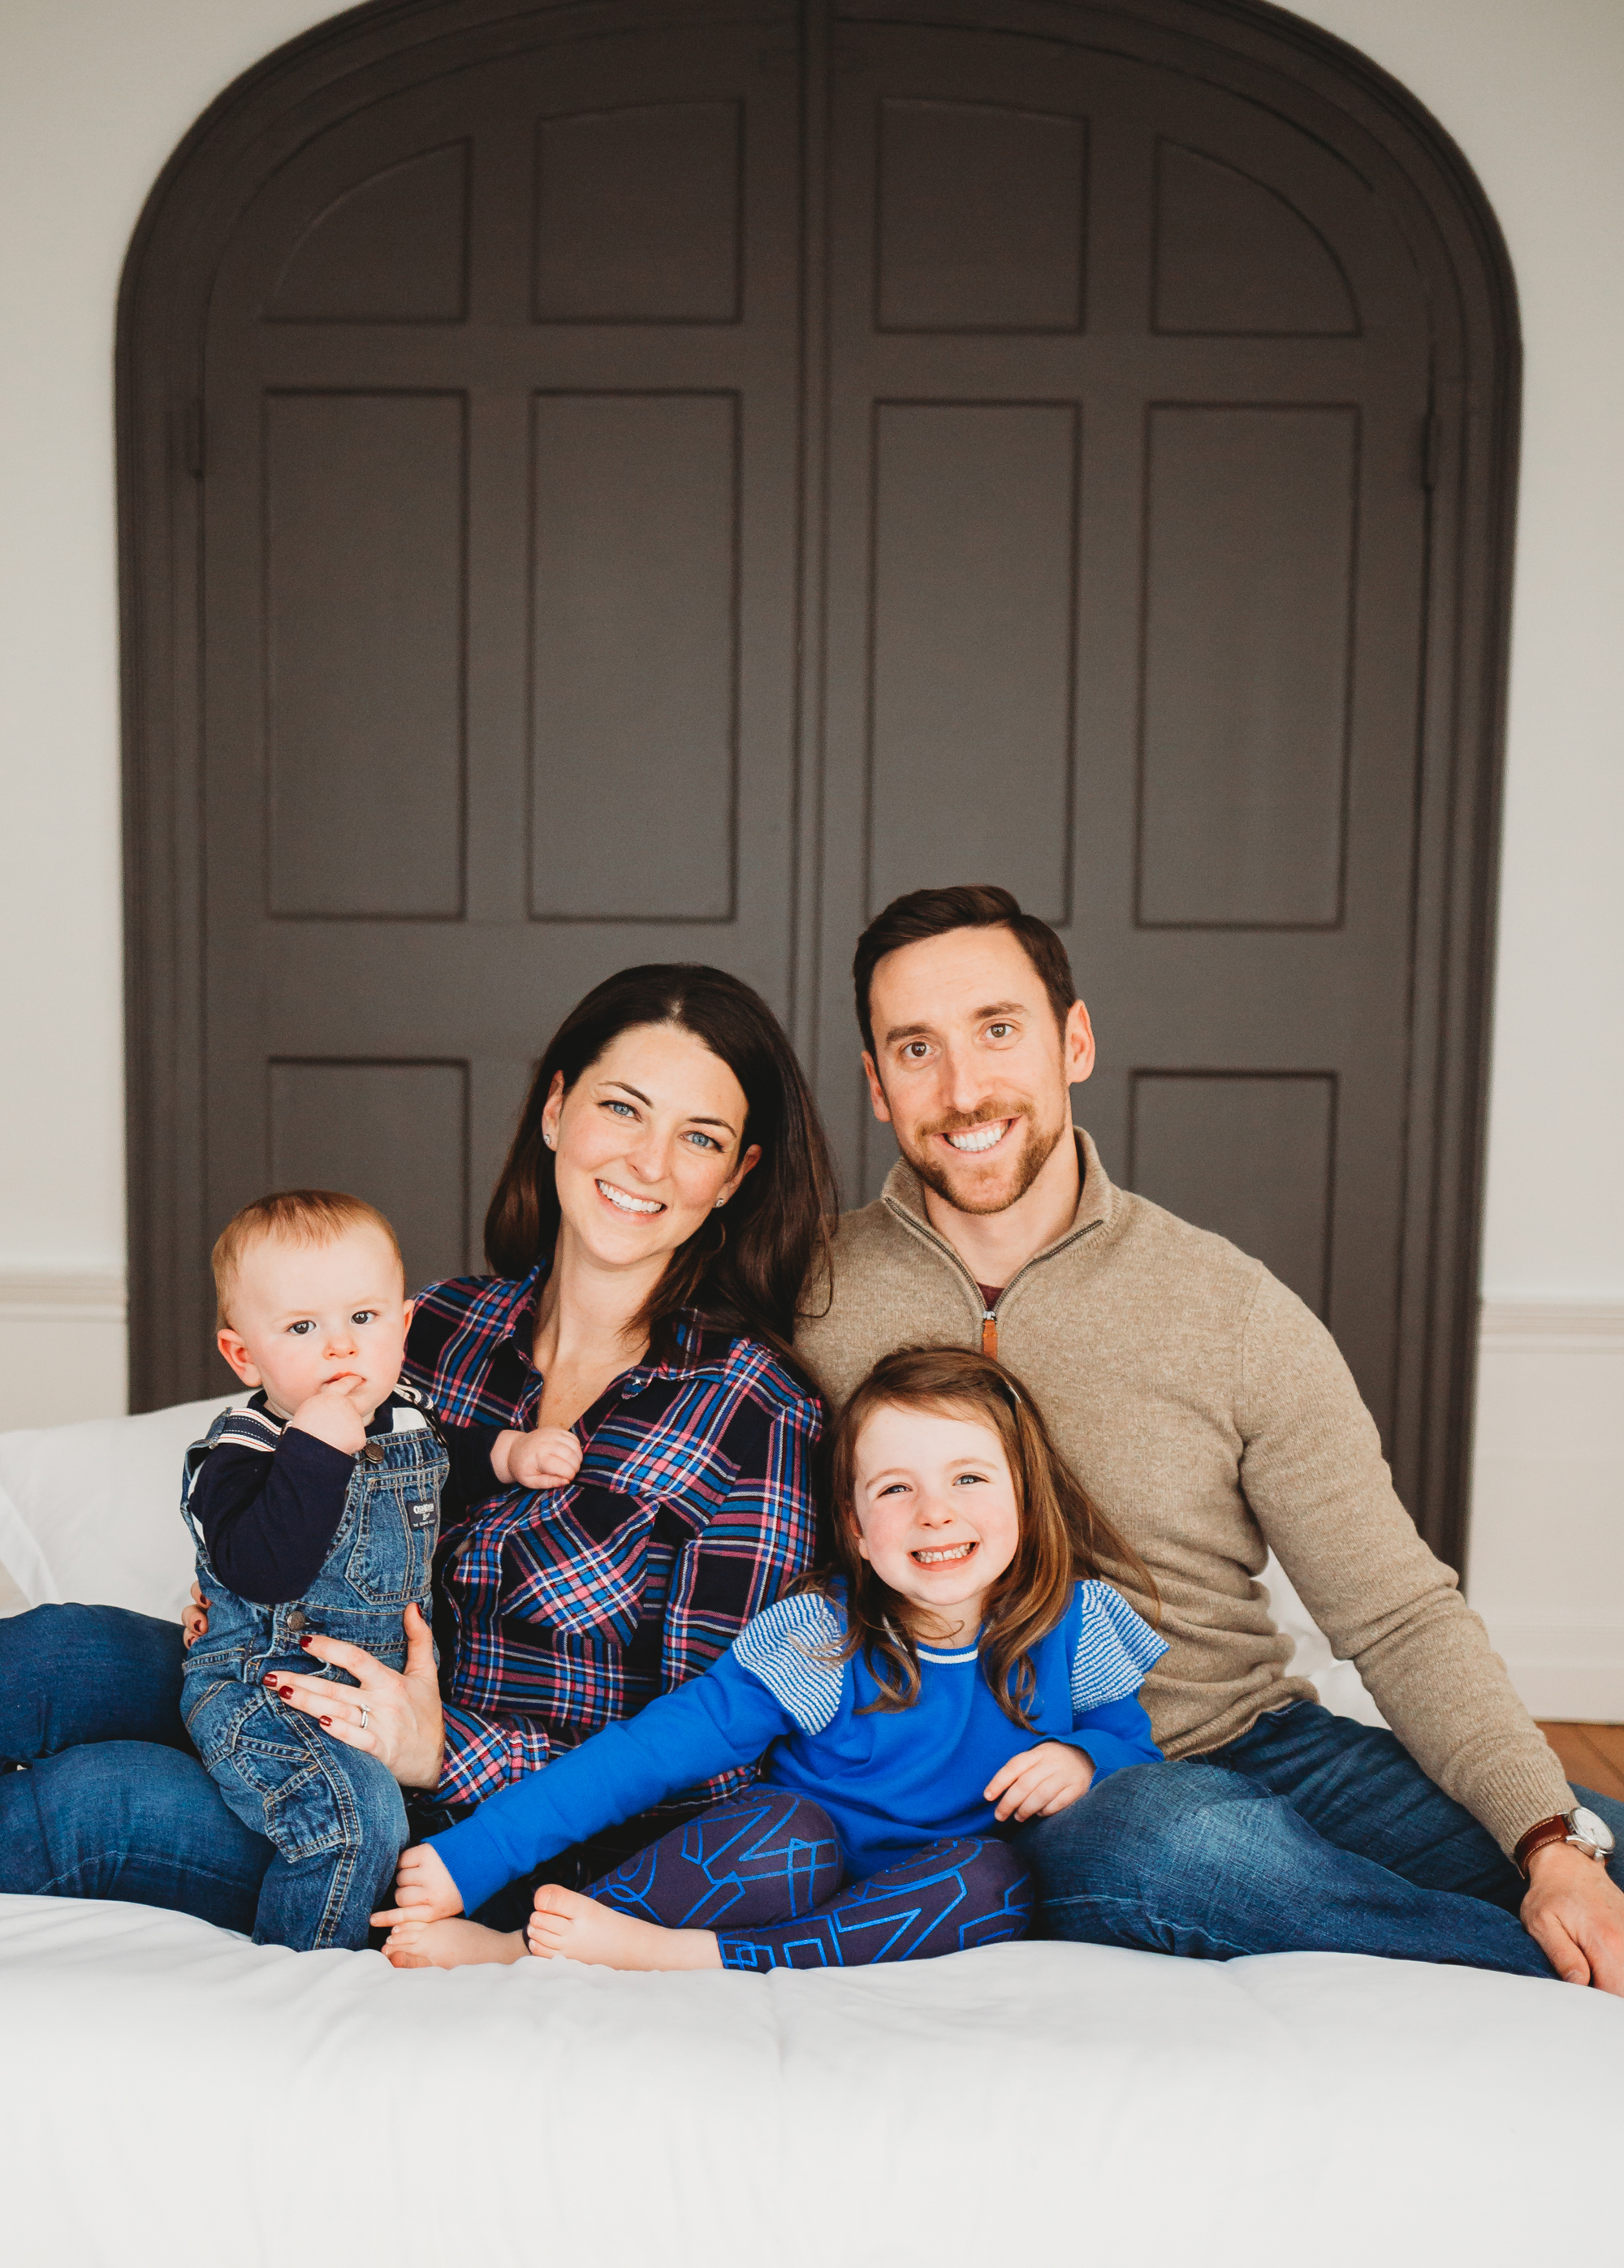 The holiday card winner! Boston family portraits in my natural light studio.